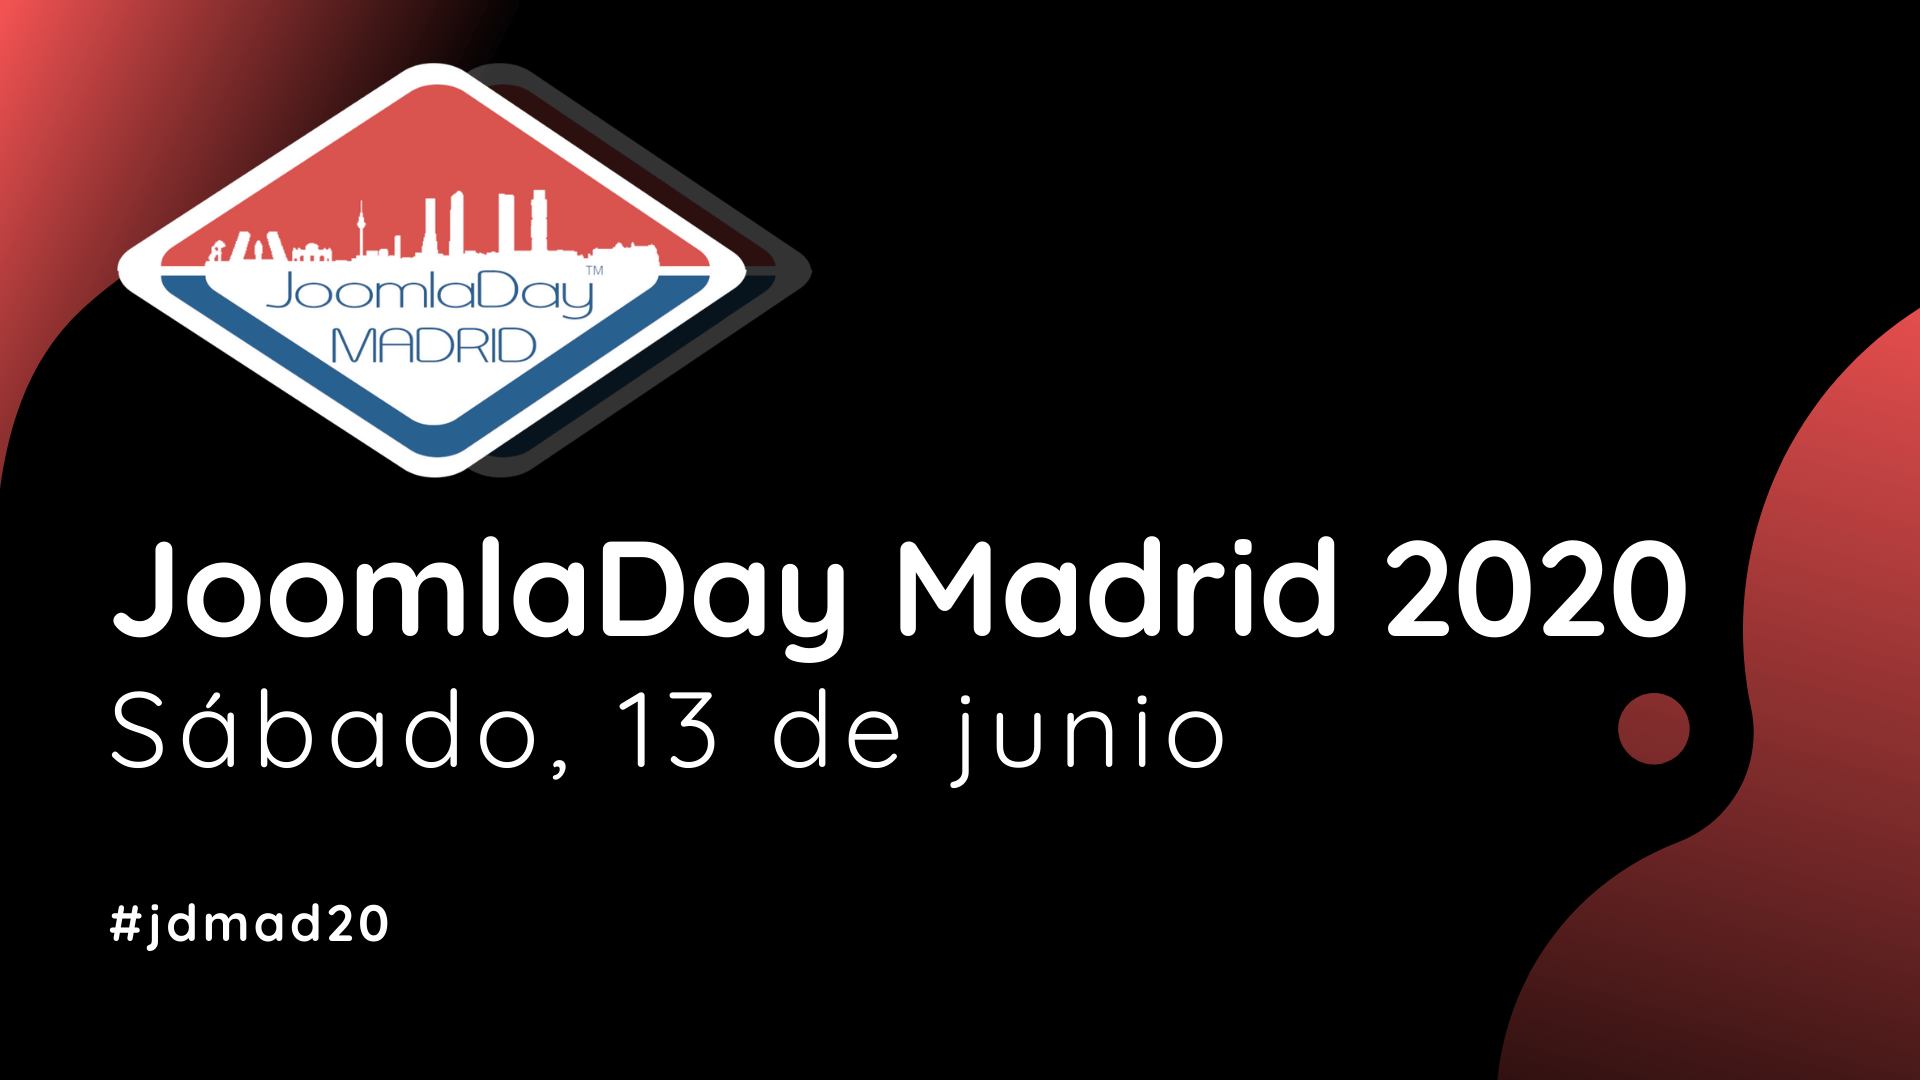 JoomlaDay Madrid 2020